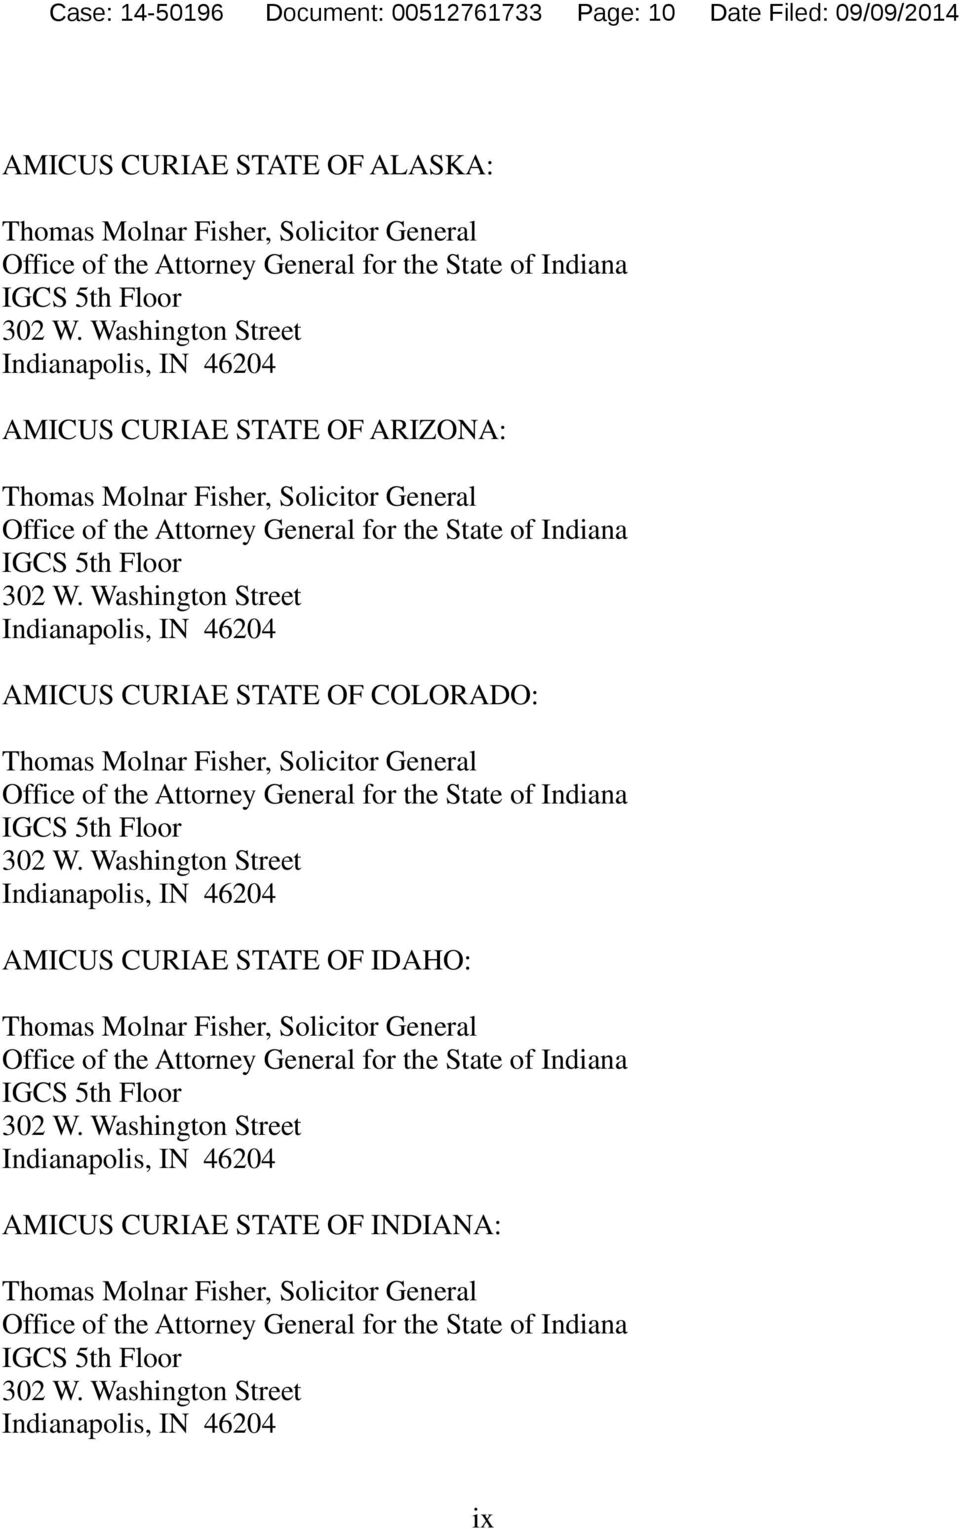 Washington Street Indianapolis, IN 46204 AMICUS CURIAE STATE OF ARIZONA: Thomas Molnar Fisher, Solicitor General Office of the Attorney General for the State of Indiana  Washington Street